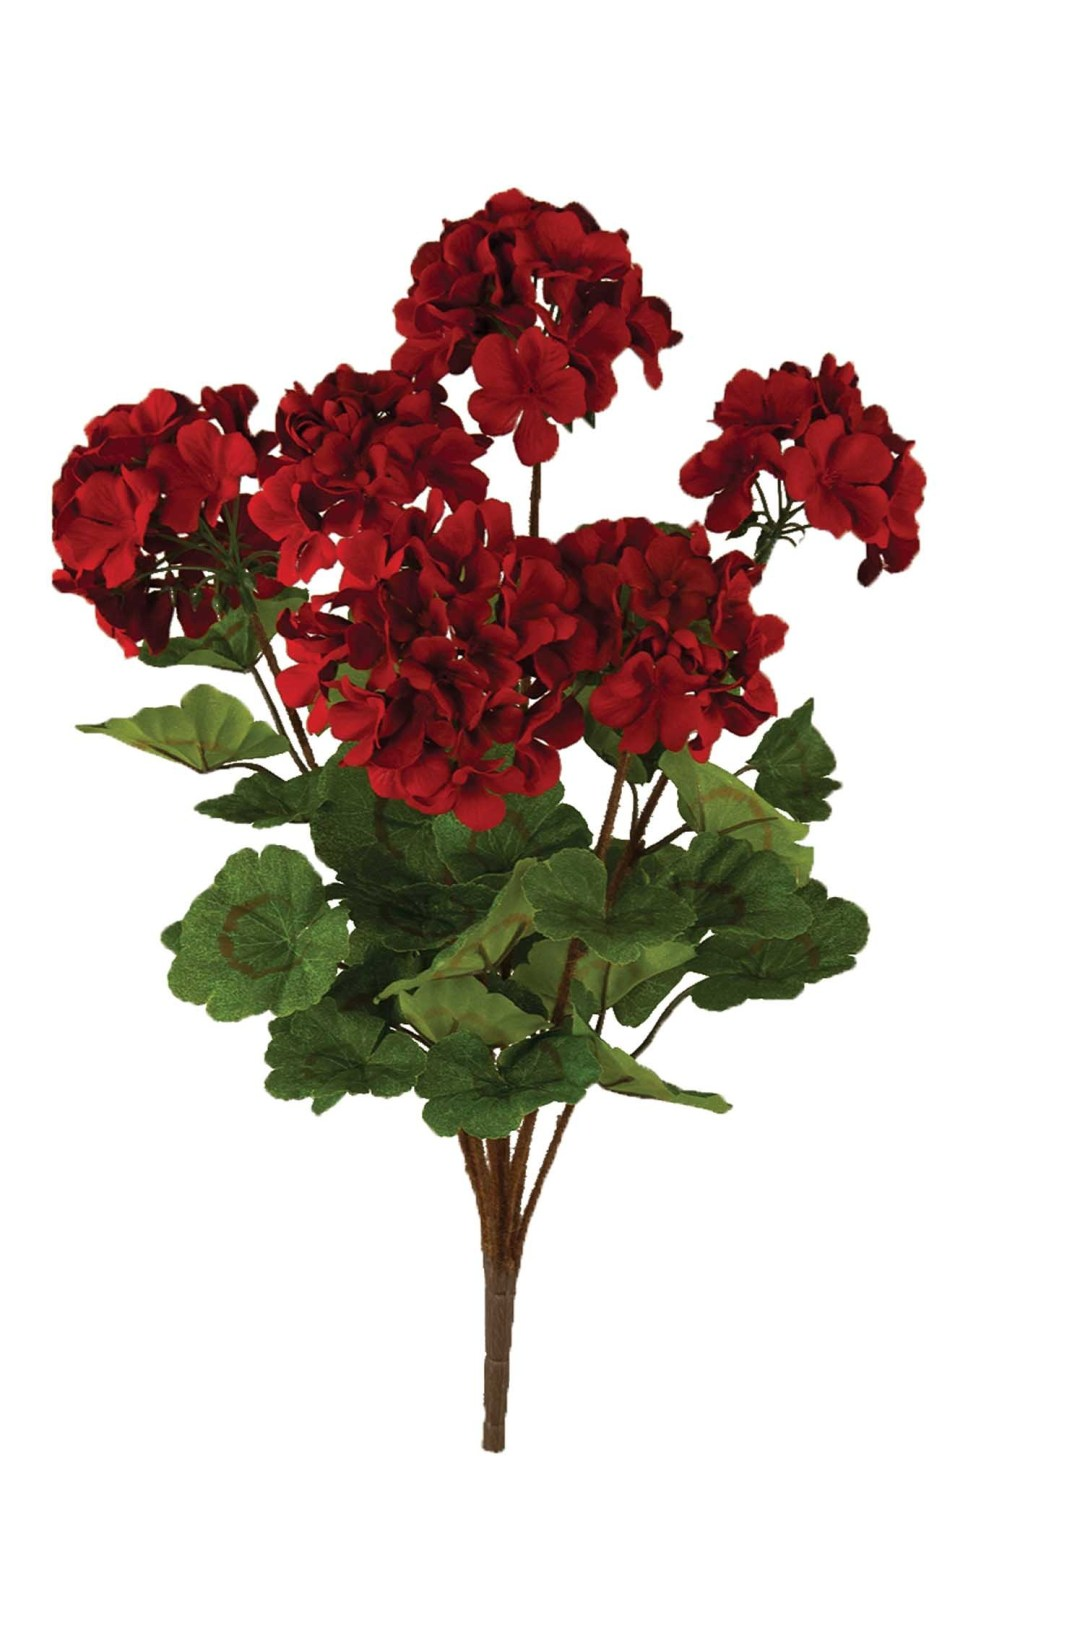 "SB2038RD - 20"" Red Geranium Bush x6 $6.45 each SB2038RD"